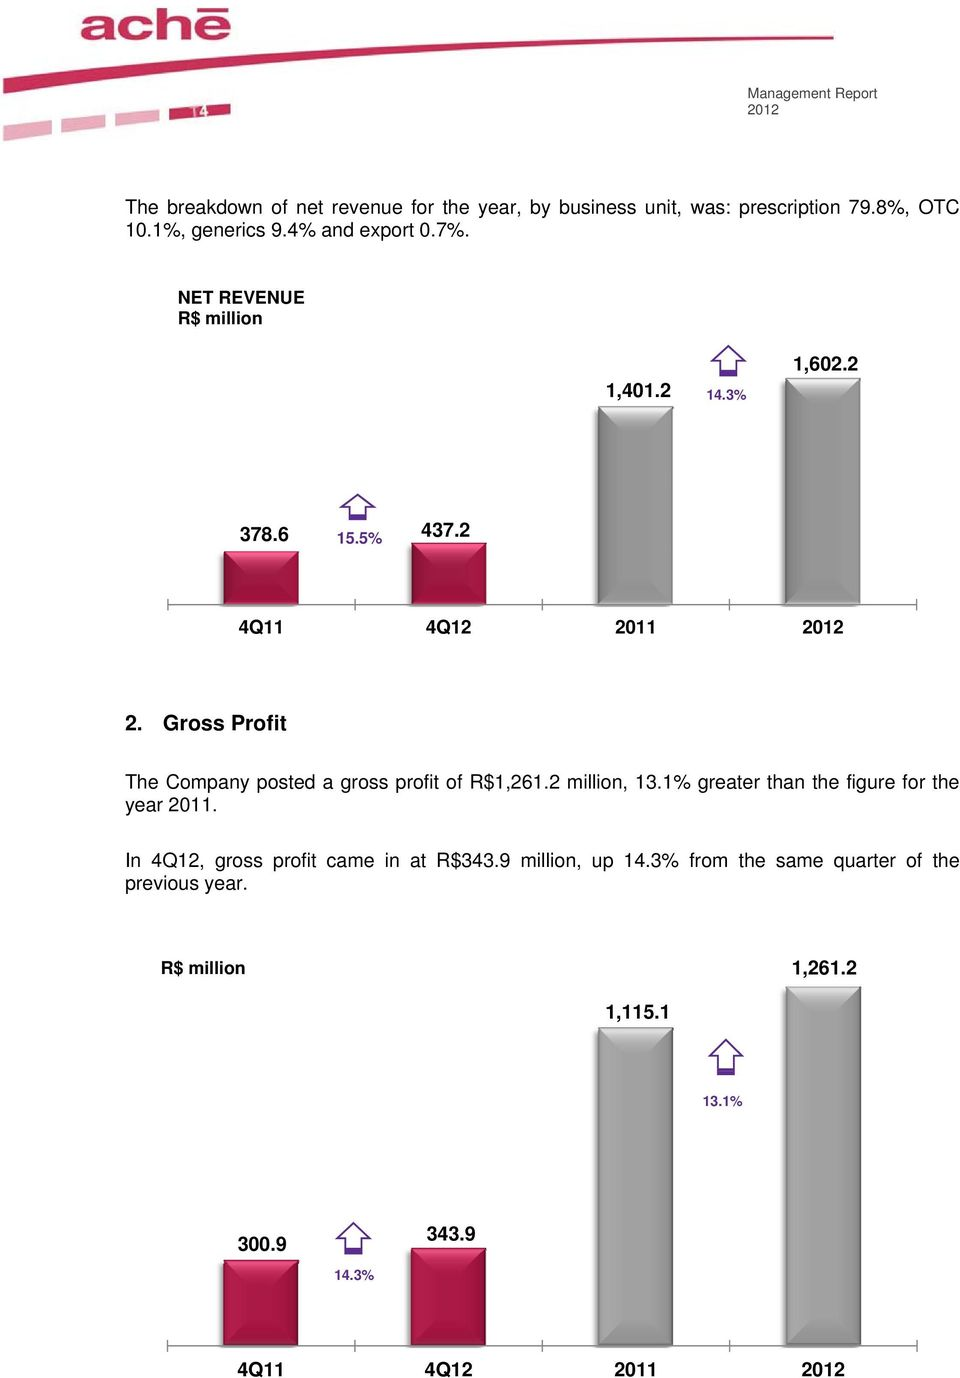 Gross Profit The posted a gross profit of R$1,261.2 million, 13.1% greater than the figure for the year 2011.